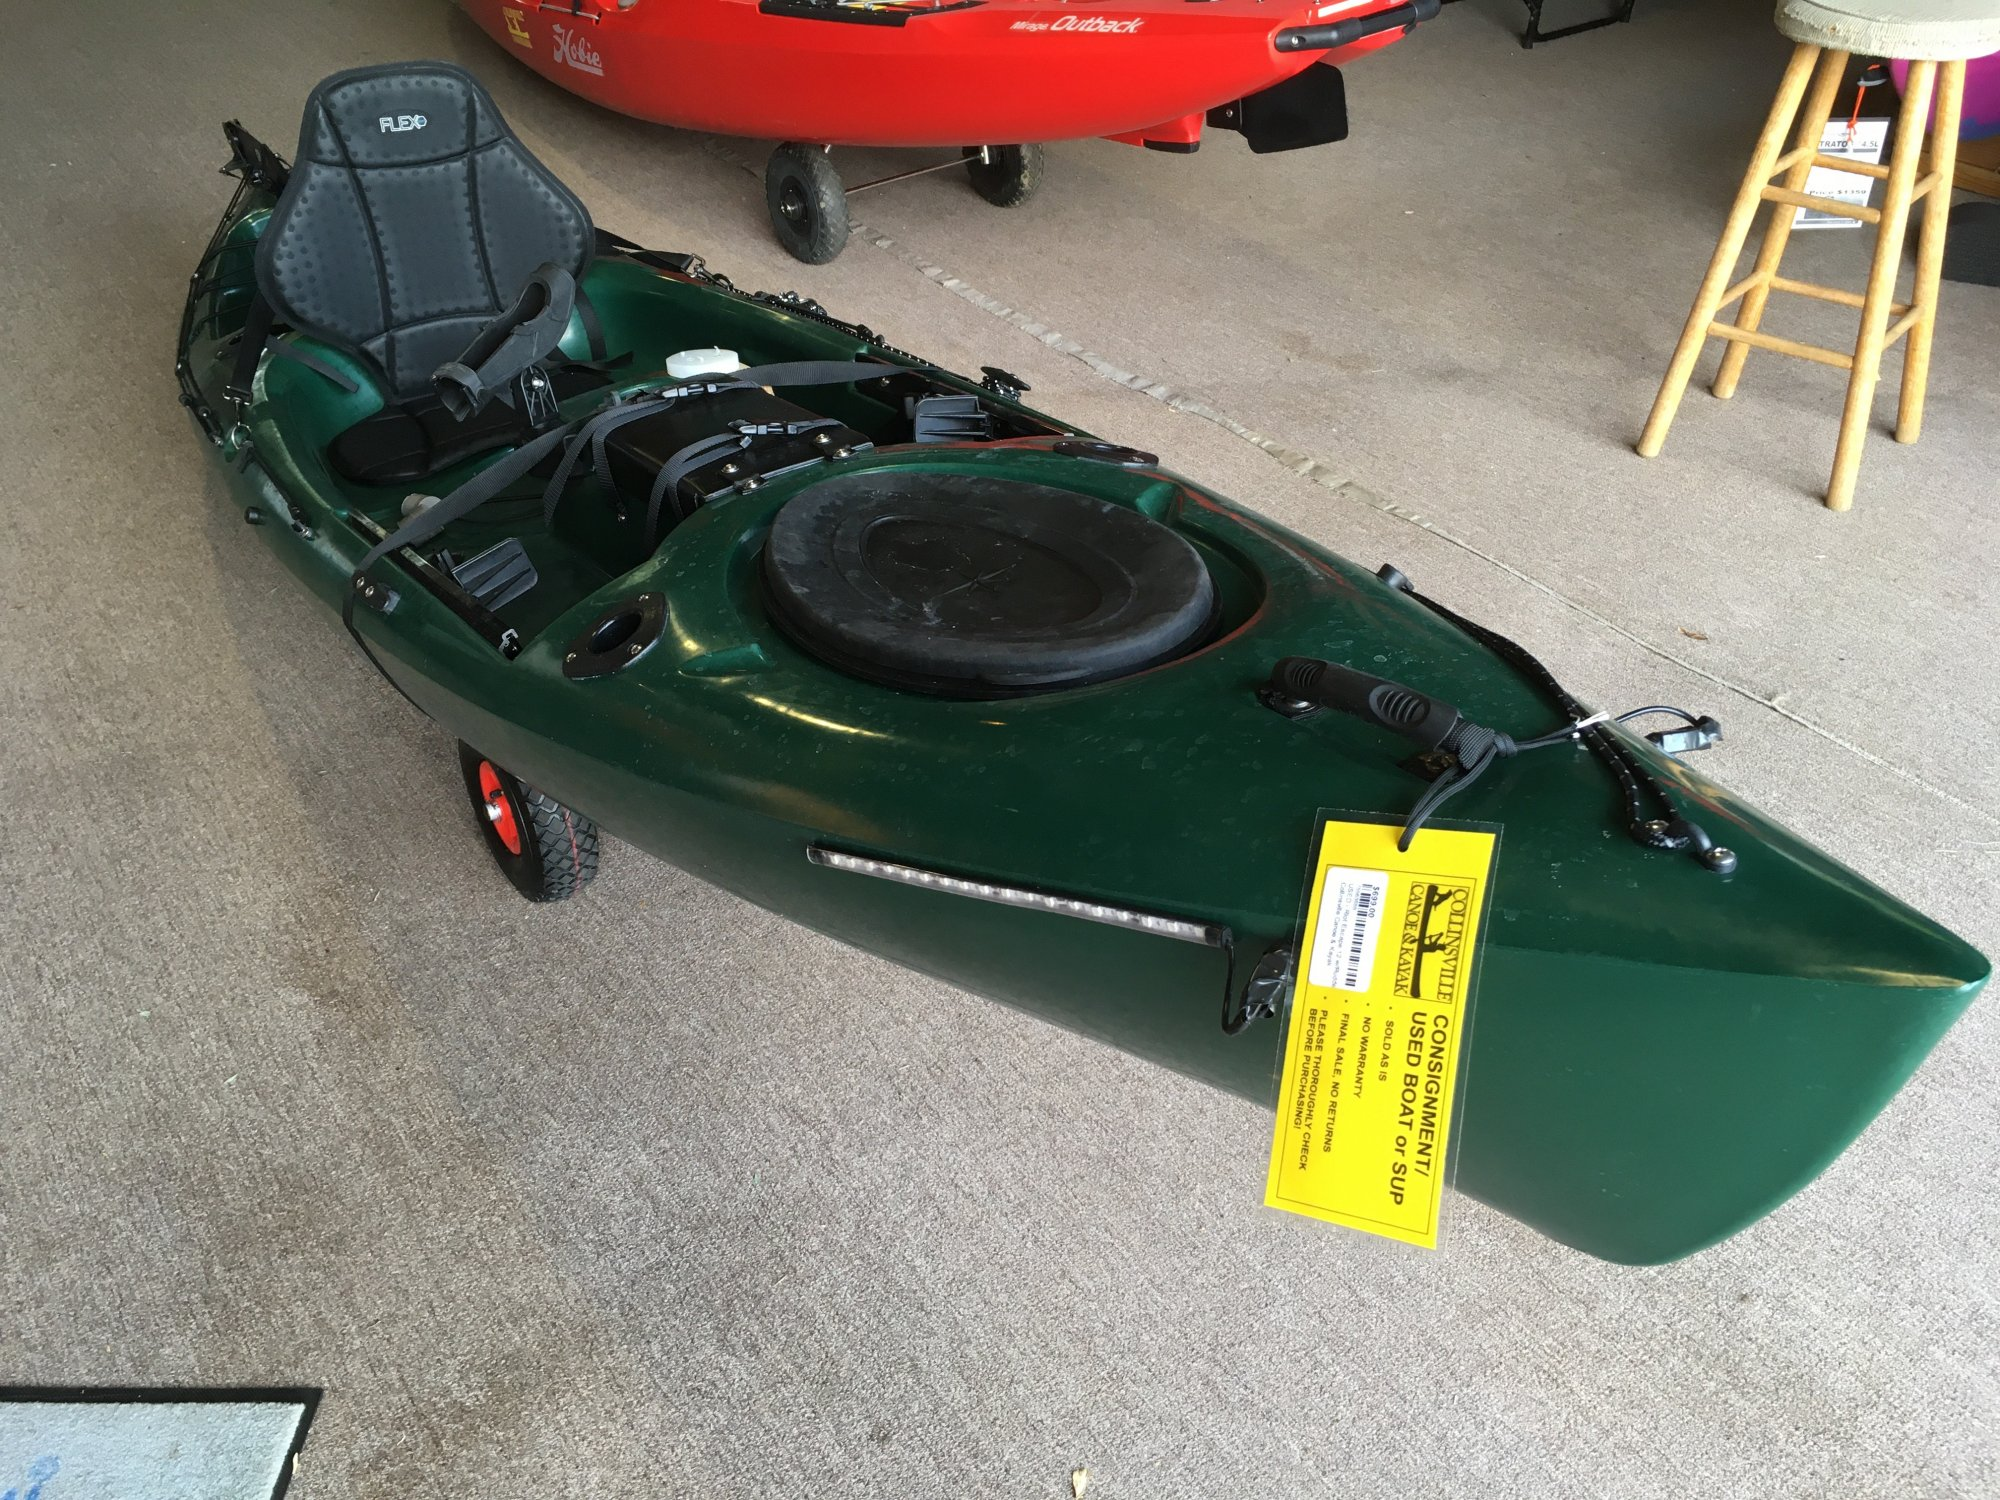 USED - Riot Escape 12 w/Rudder, Green